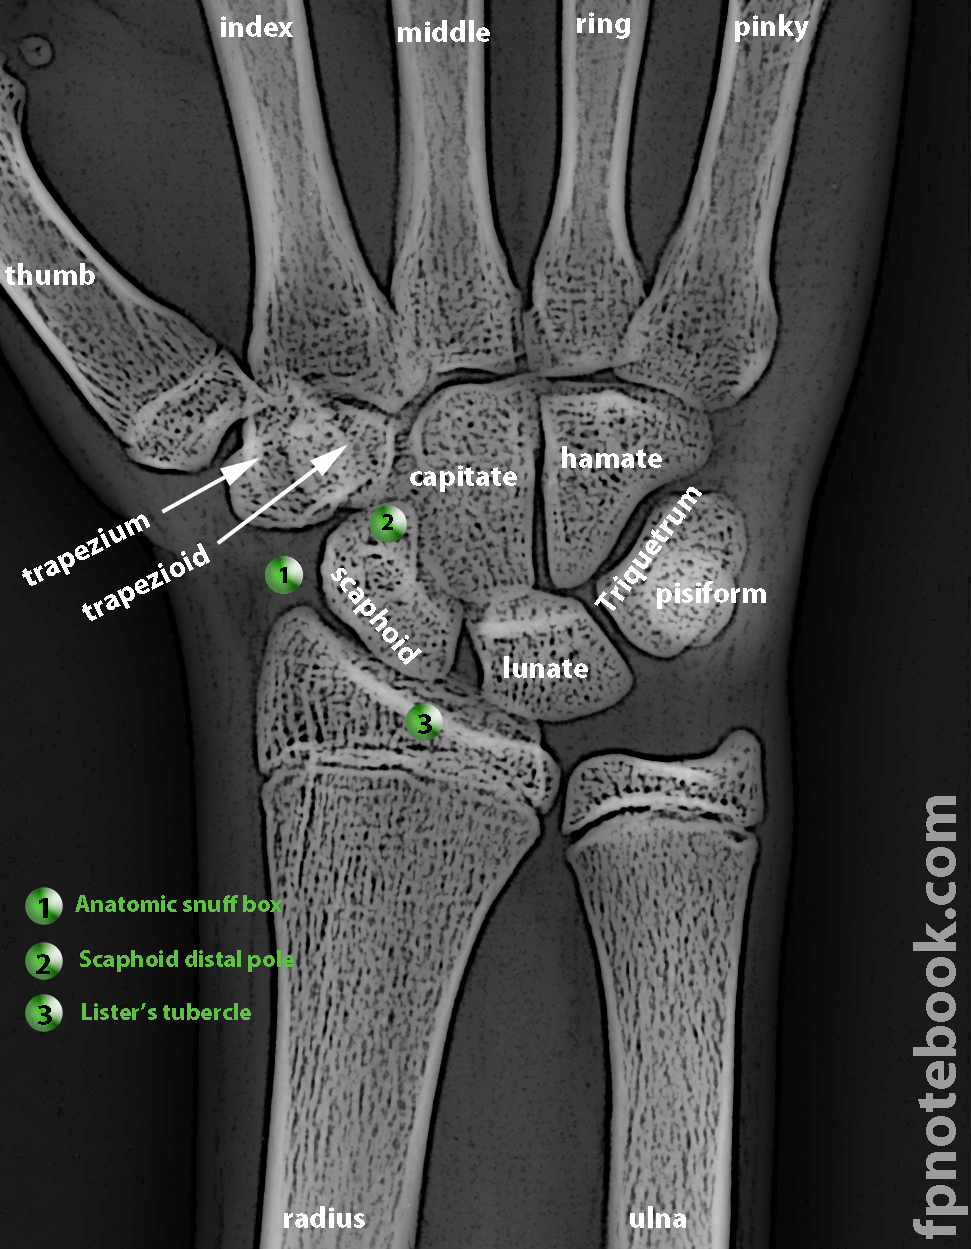 xray+images | OrthoNormalWristXray.png | @@@ robert beverly hale ...